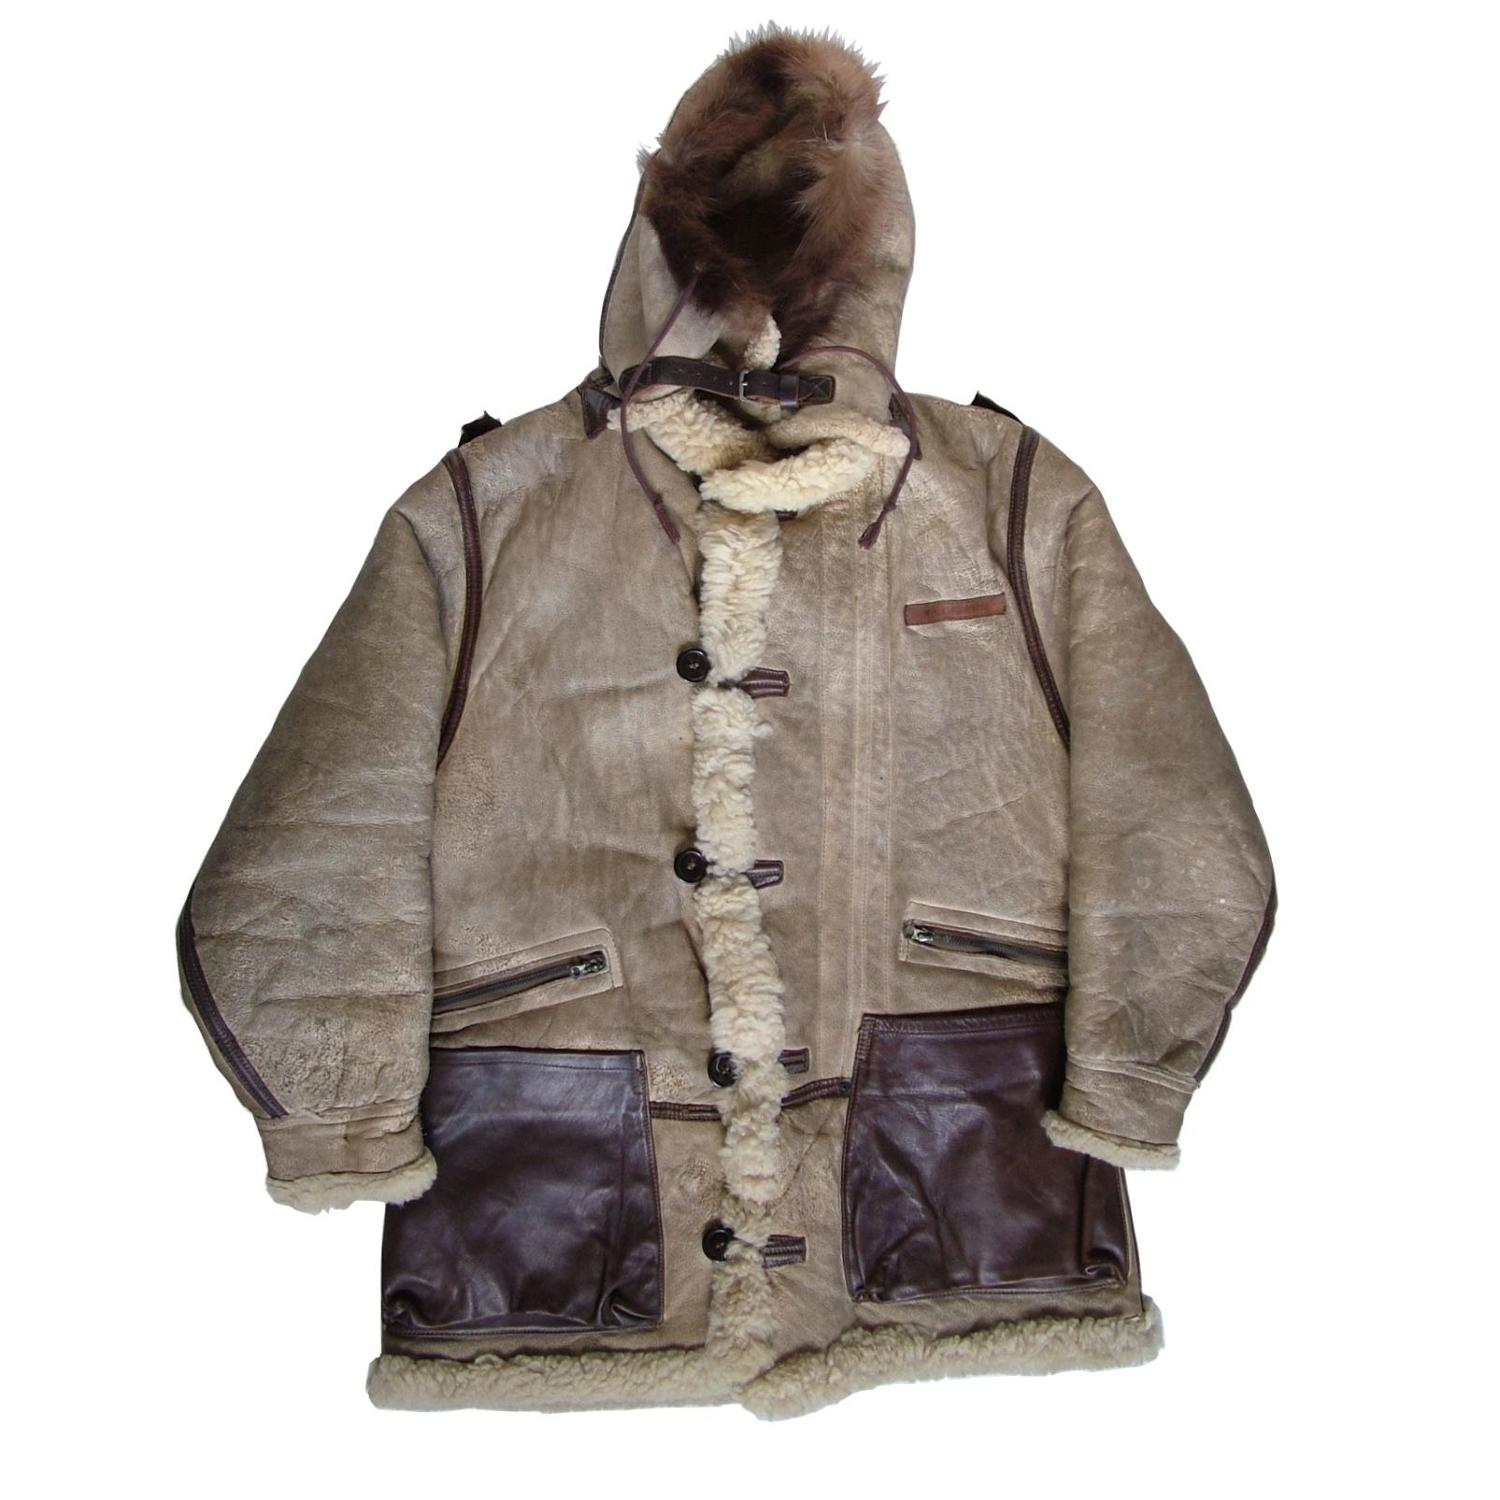 USAAF B-7 winter flying jacket